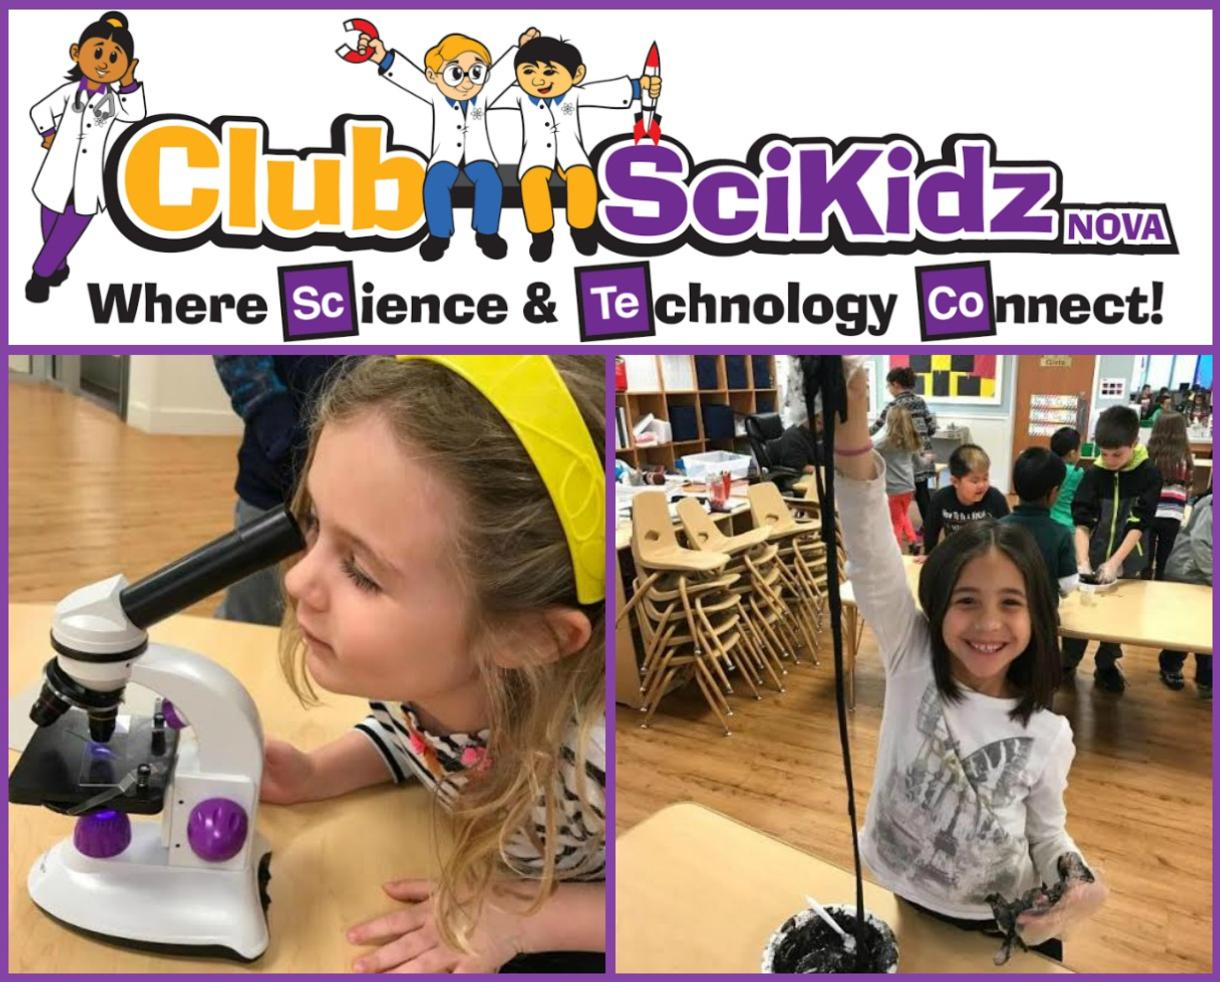 $340 for Club SciKidz NOVA Science & Technology Camps for Ages 4-15 - Includes Before and After Care! - $100 Deposit Paid Now - Fairfax or Manassas Locations (20% Off)